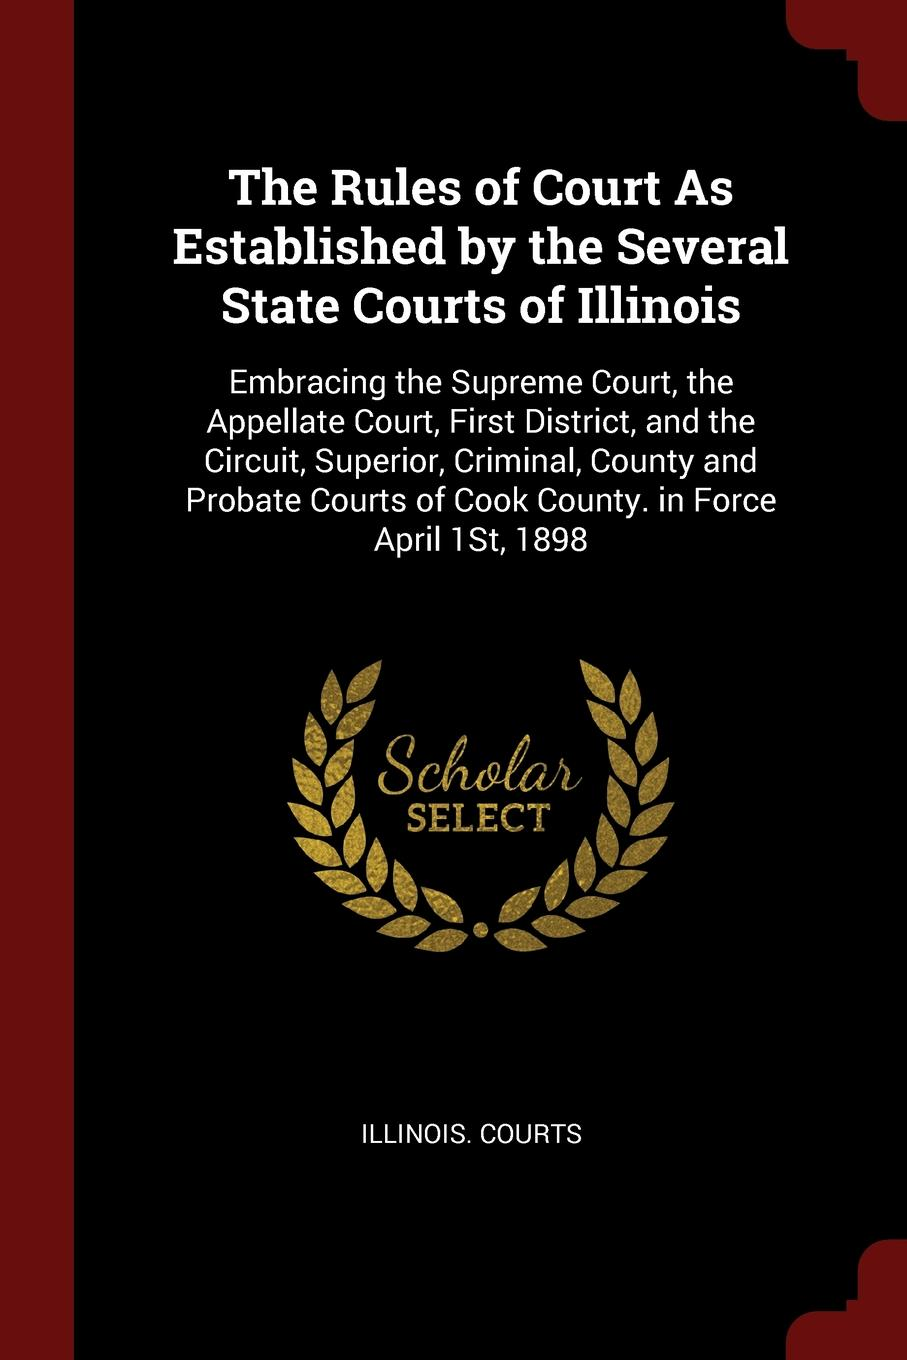 The Rules of Court As Established by the Several State Courts Illinois. Embracing Supreme Court, Appellate First District, and Circuit, Superior, Criminal, County Probate Cook County. in Force April 1St, 1898